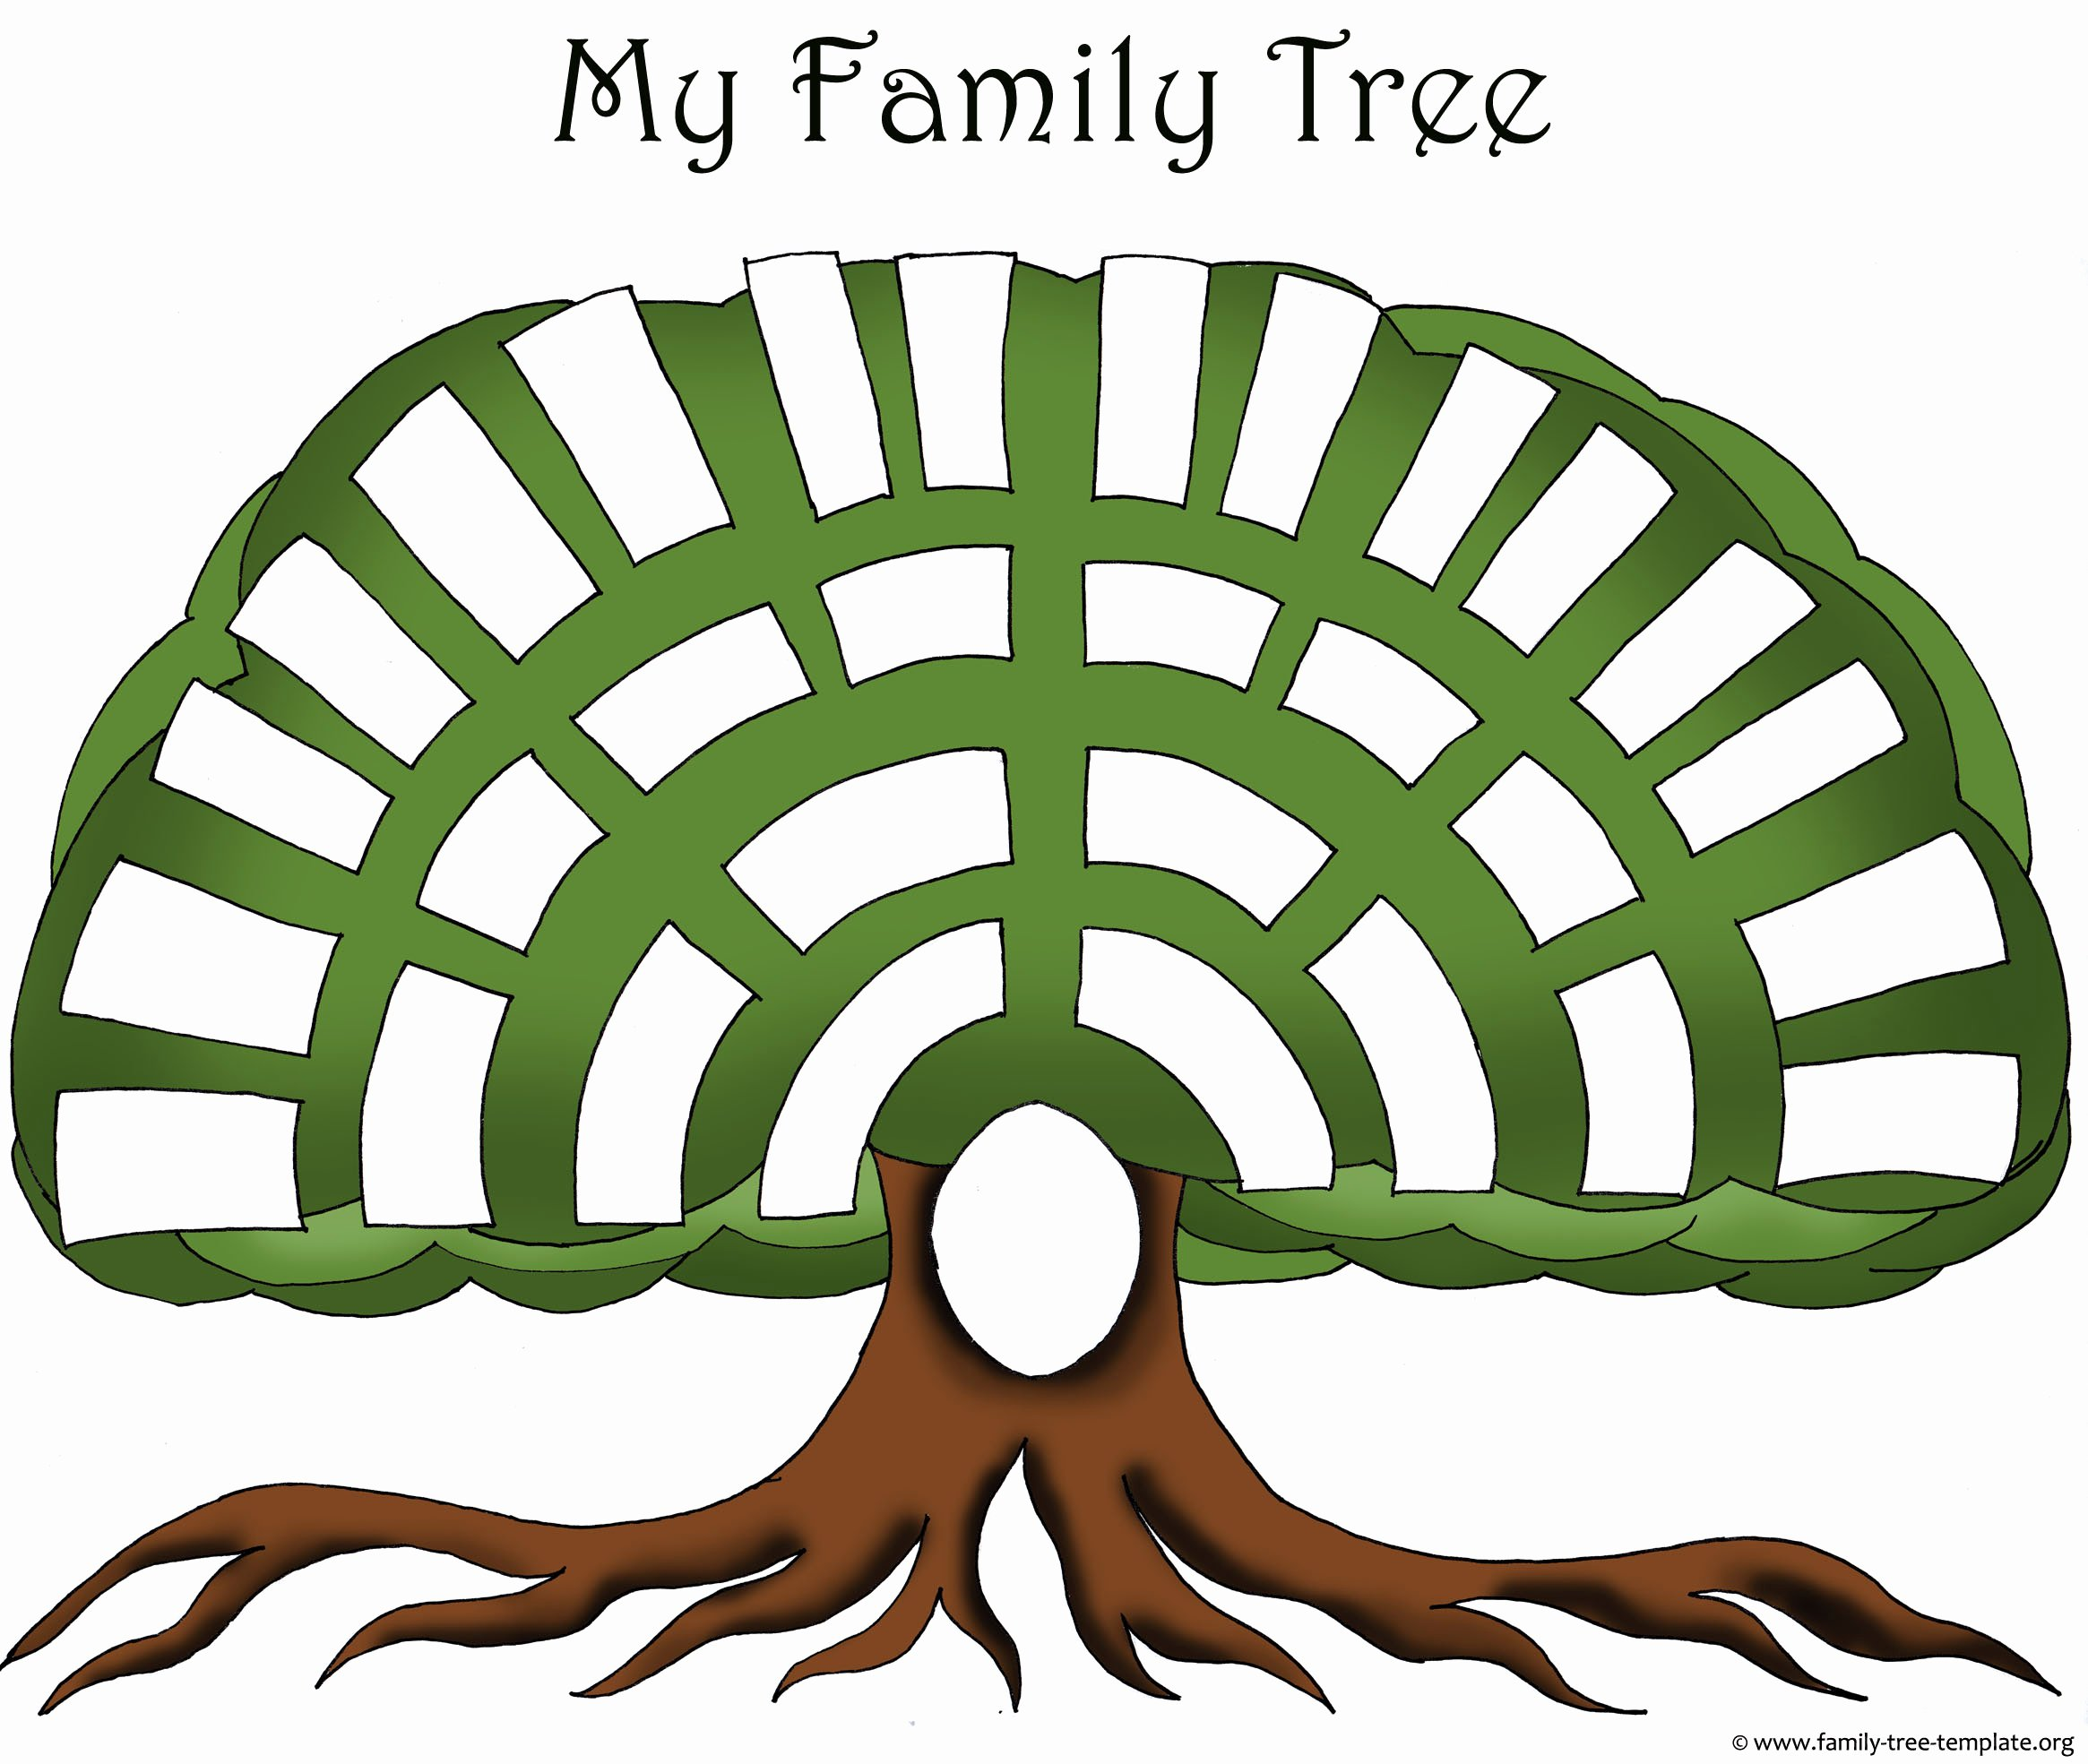 Family Tree Art Template Awesome Family Tree Templates & Genealogy Clipart for Your